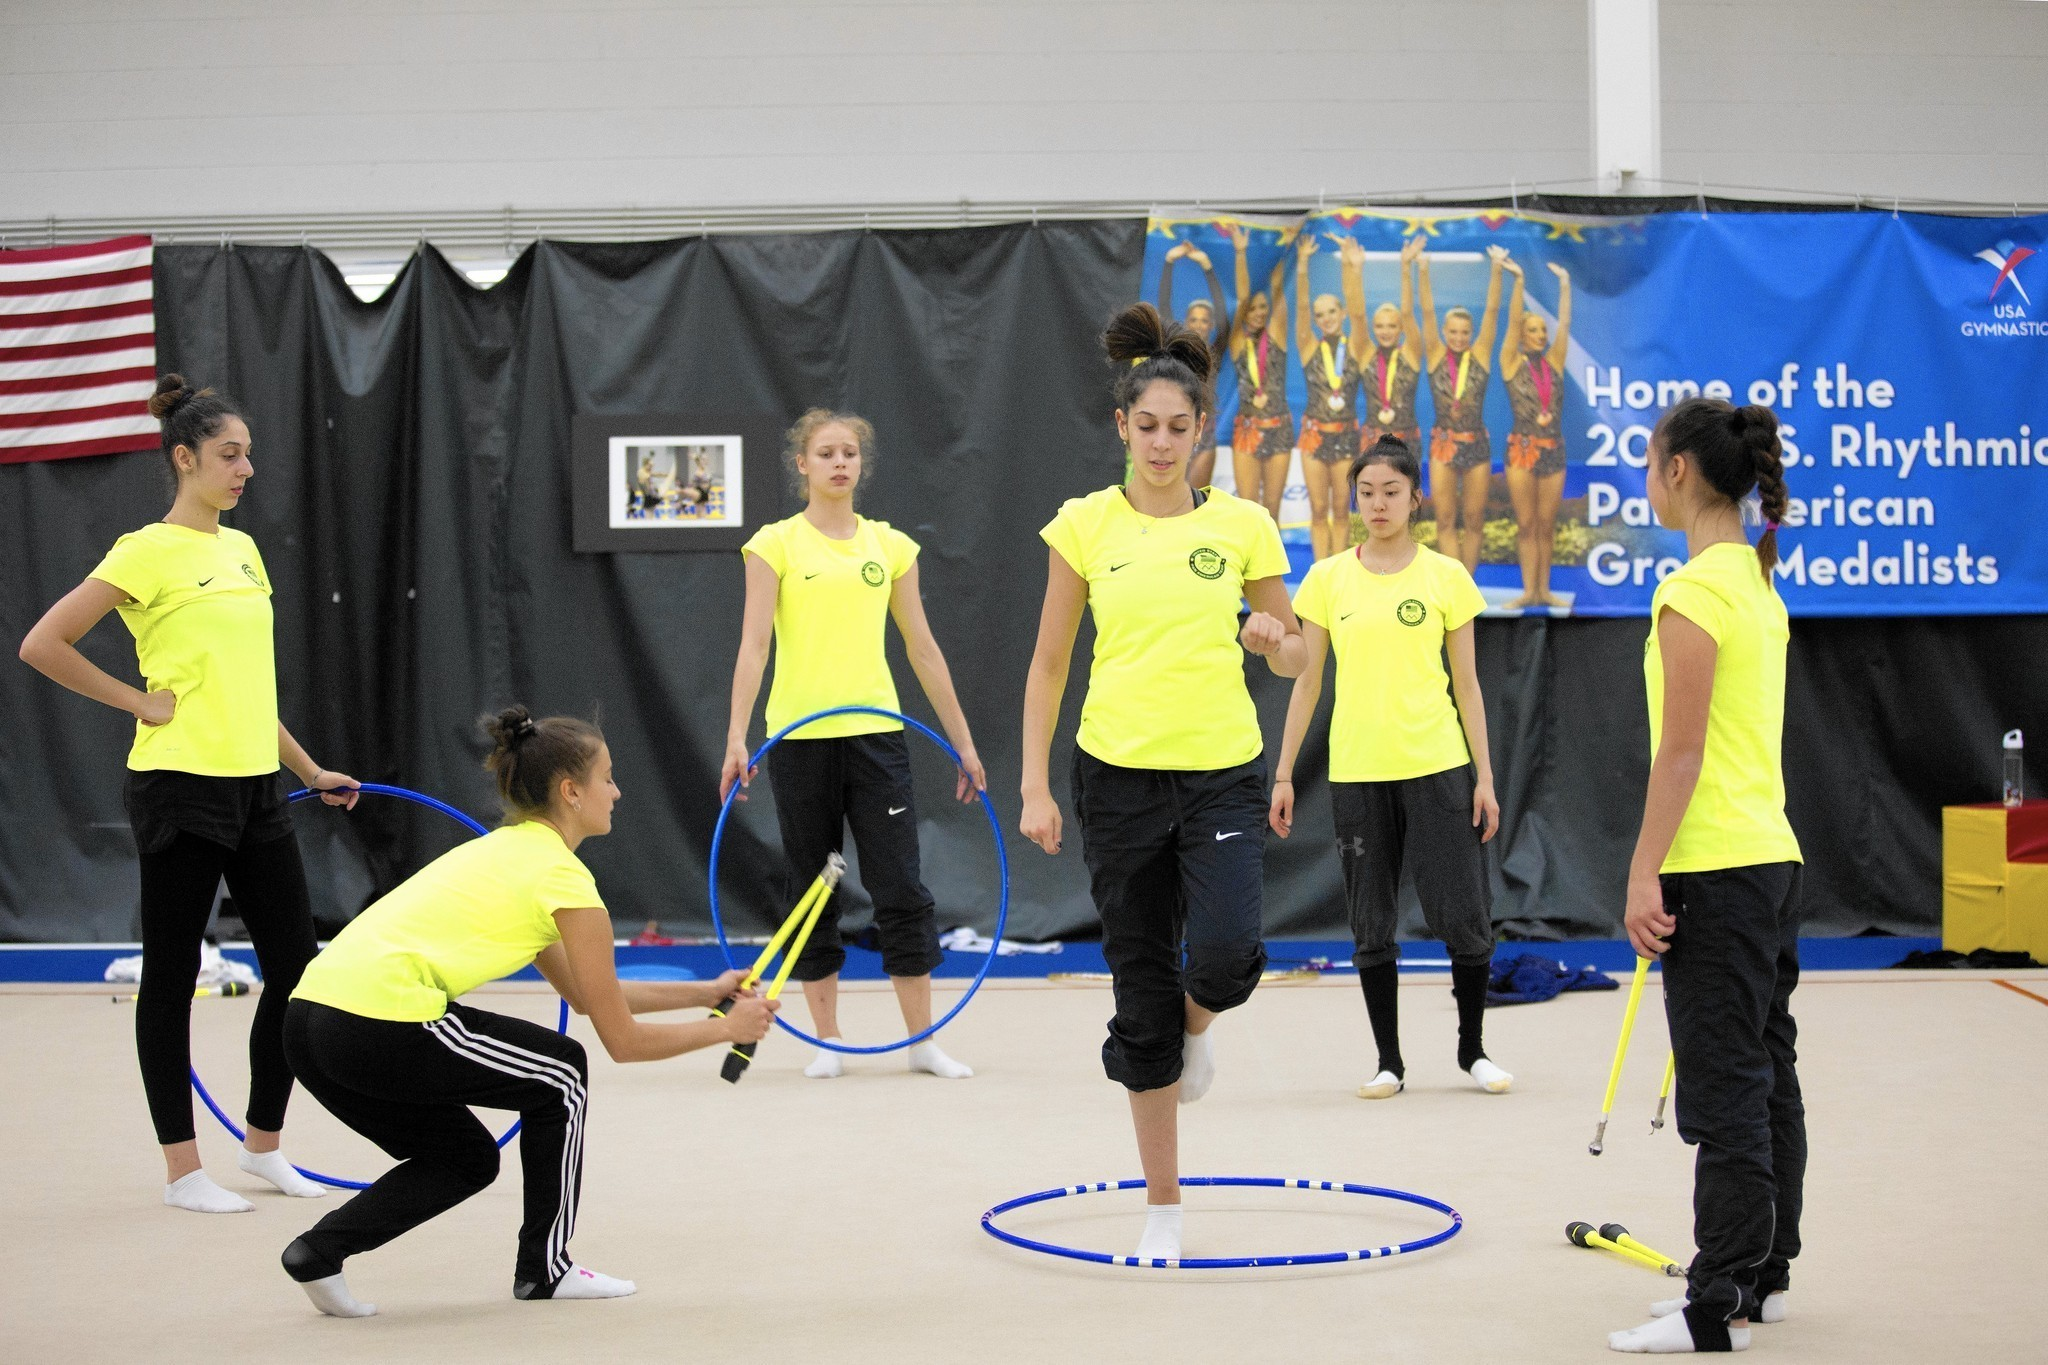 local rhythmic gymnasts practice 7 hours daily to prepare